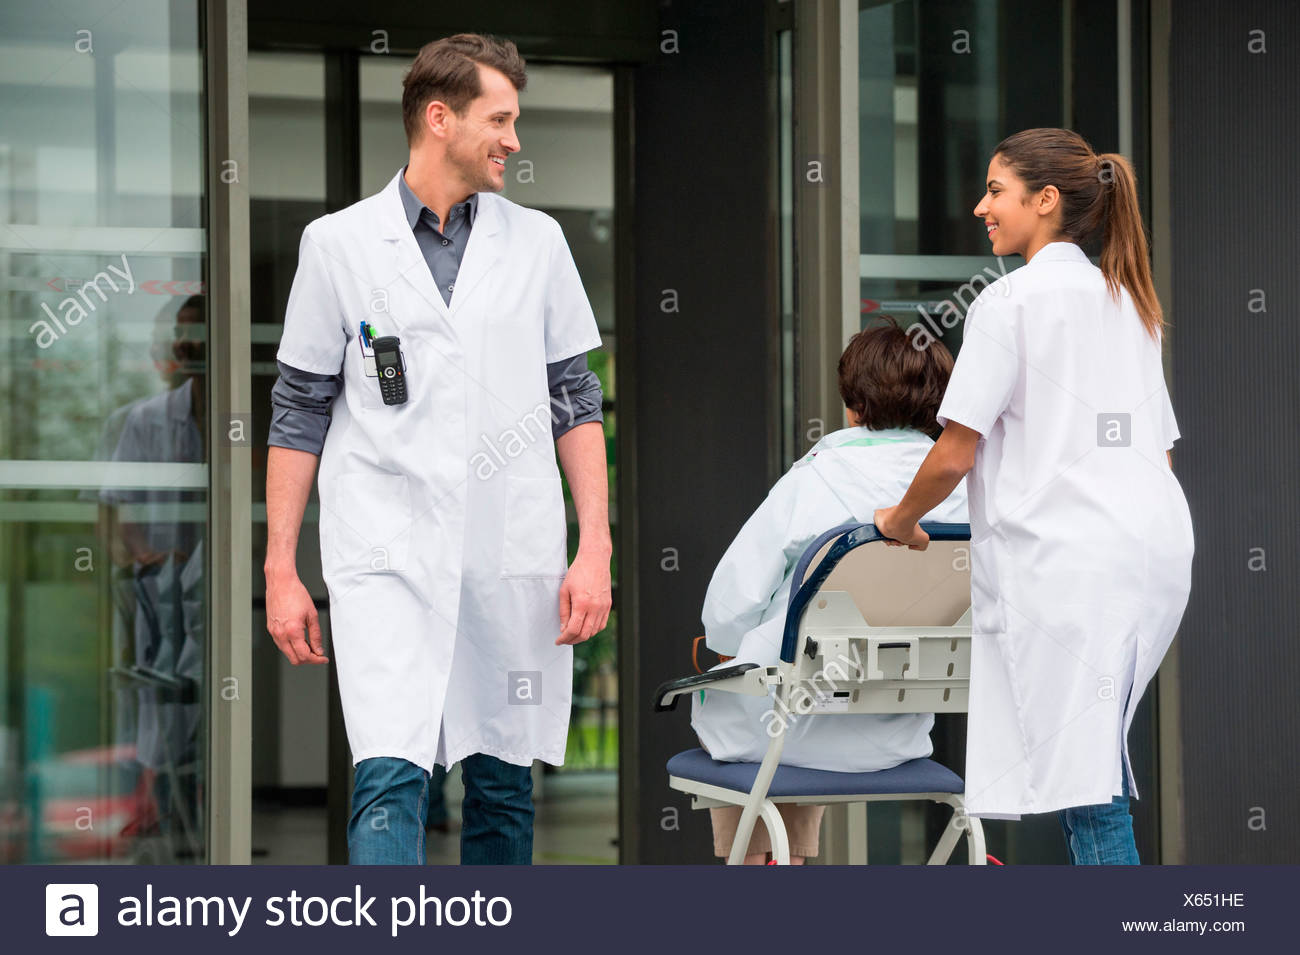 Female doctor pushing a patient on chair while looking at a male doctor - Stock Image